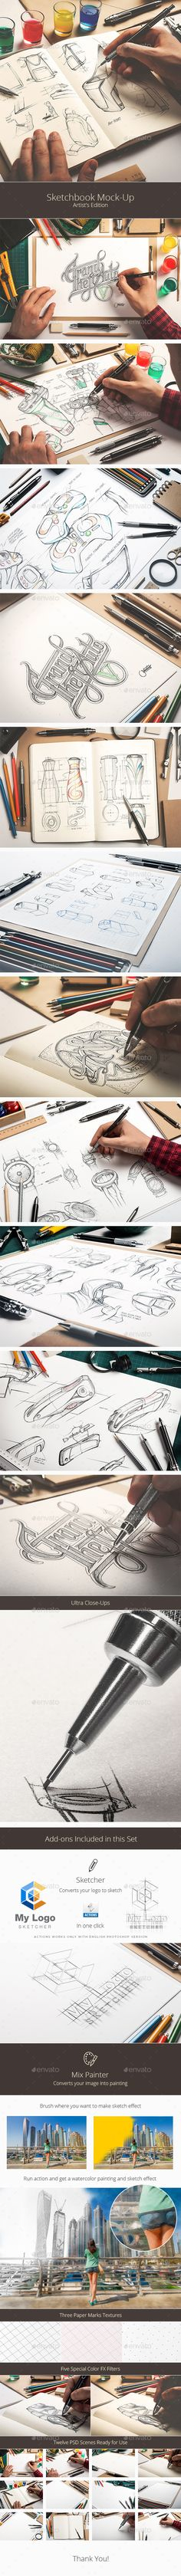 Buy Sketchbook Mock-Up / Artists Edition by on GraphicRiver. Create professional sketch mock-ups with ease. Display your artwork, sketches, logo designs or branding projects in a. Mockup Photoshop, Photoshop Photos, Photoshop Actions, Free Mockup Templates, Flyer Template, Scene Creator, Header Image, Paper Texture, Logo Design